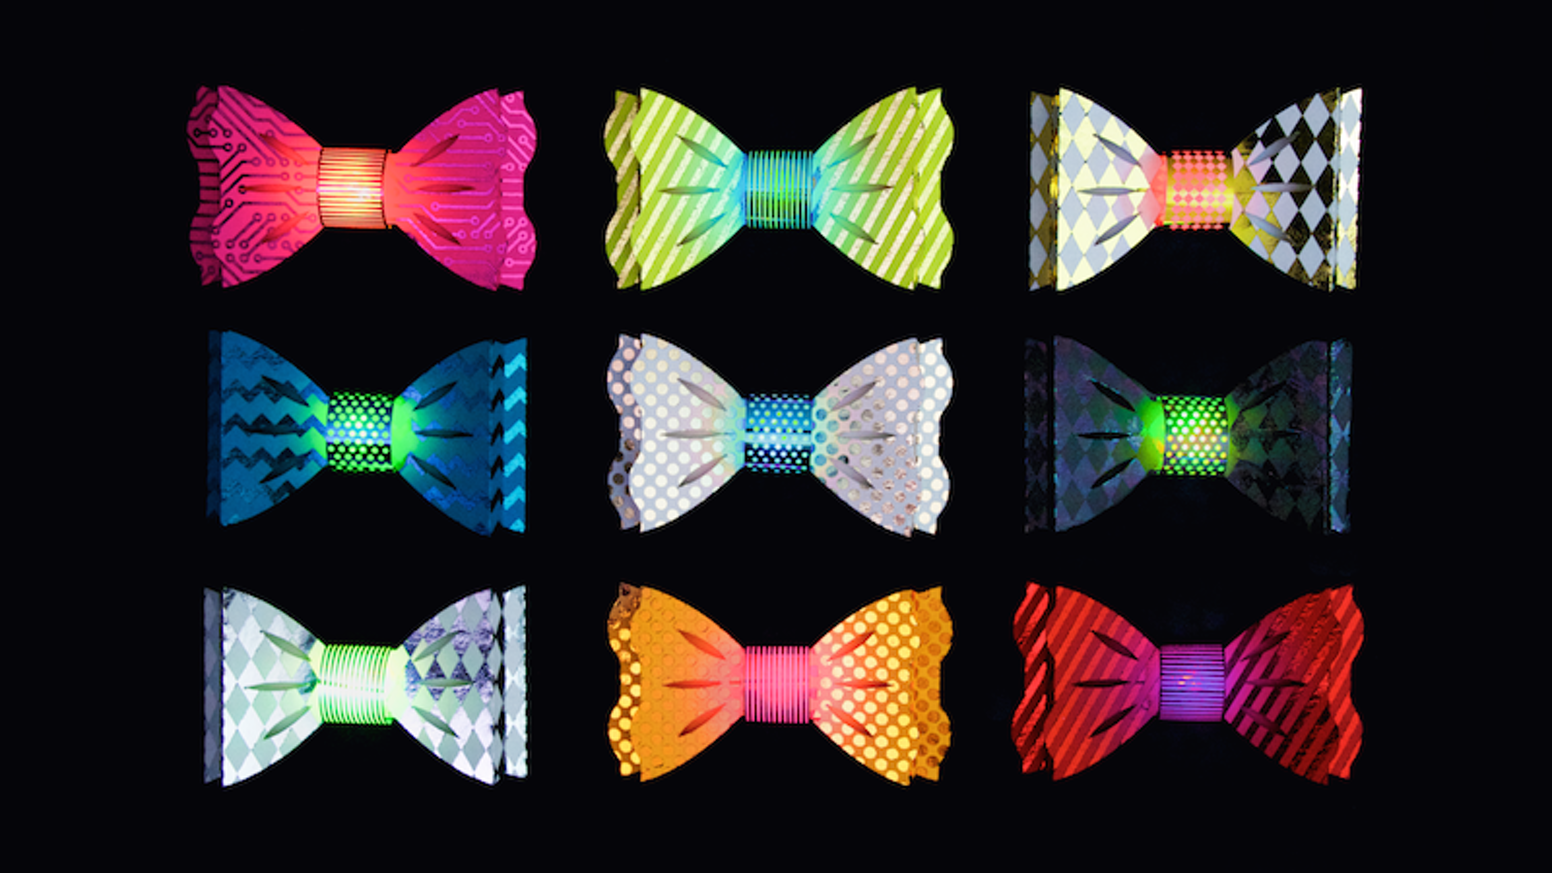 A light-up blinky bow tie kit that makes crafting w/ electronics super cool! It's a DIY craft, a party favor, and wearable tech in one!